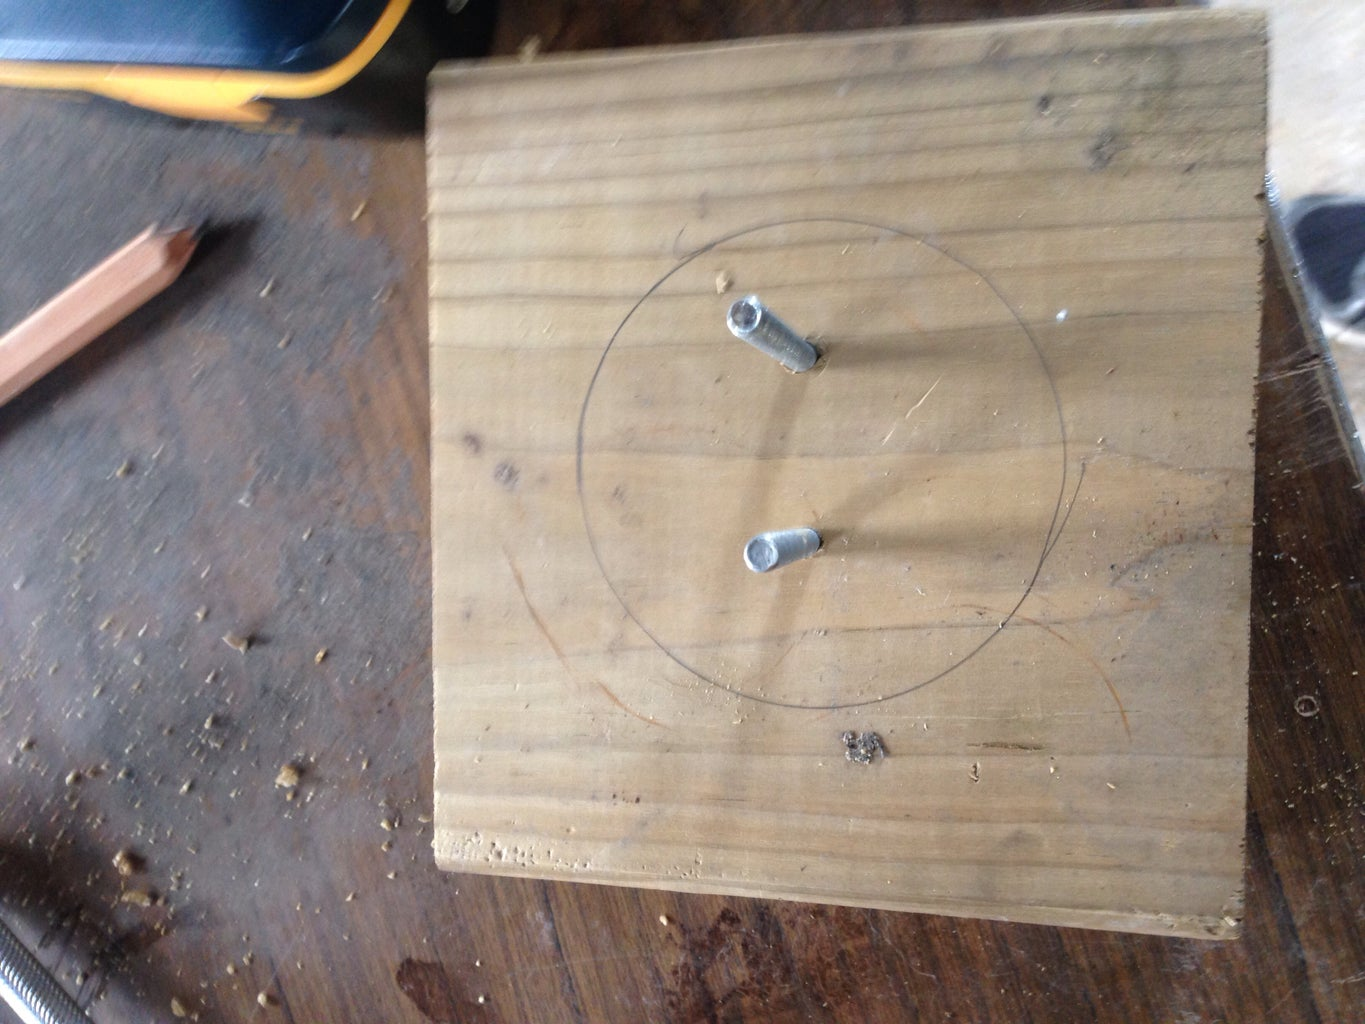 Drill, Thread, and Done